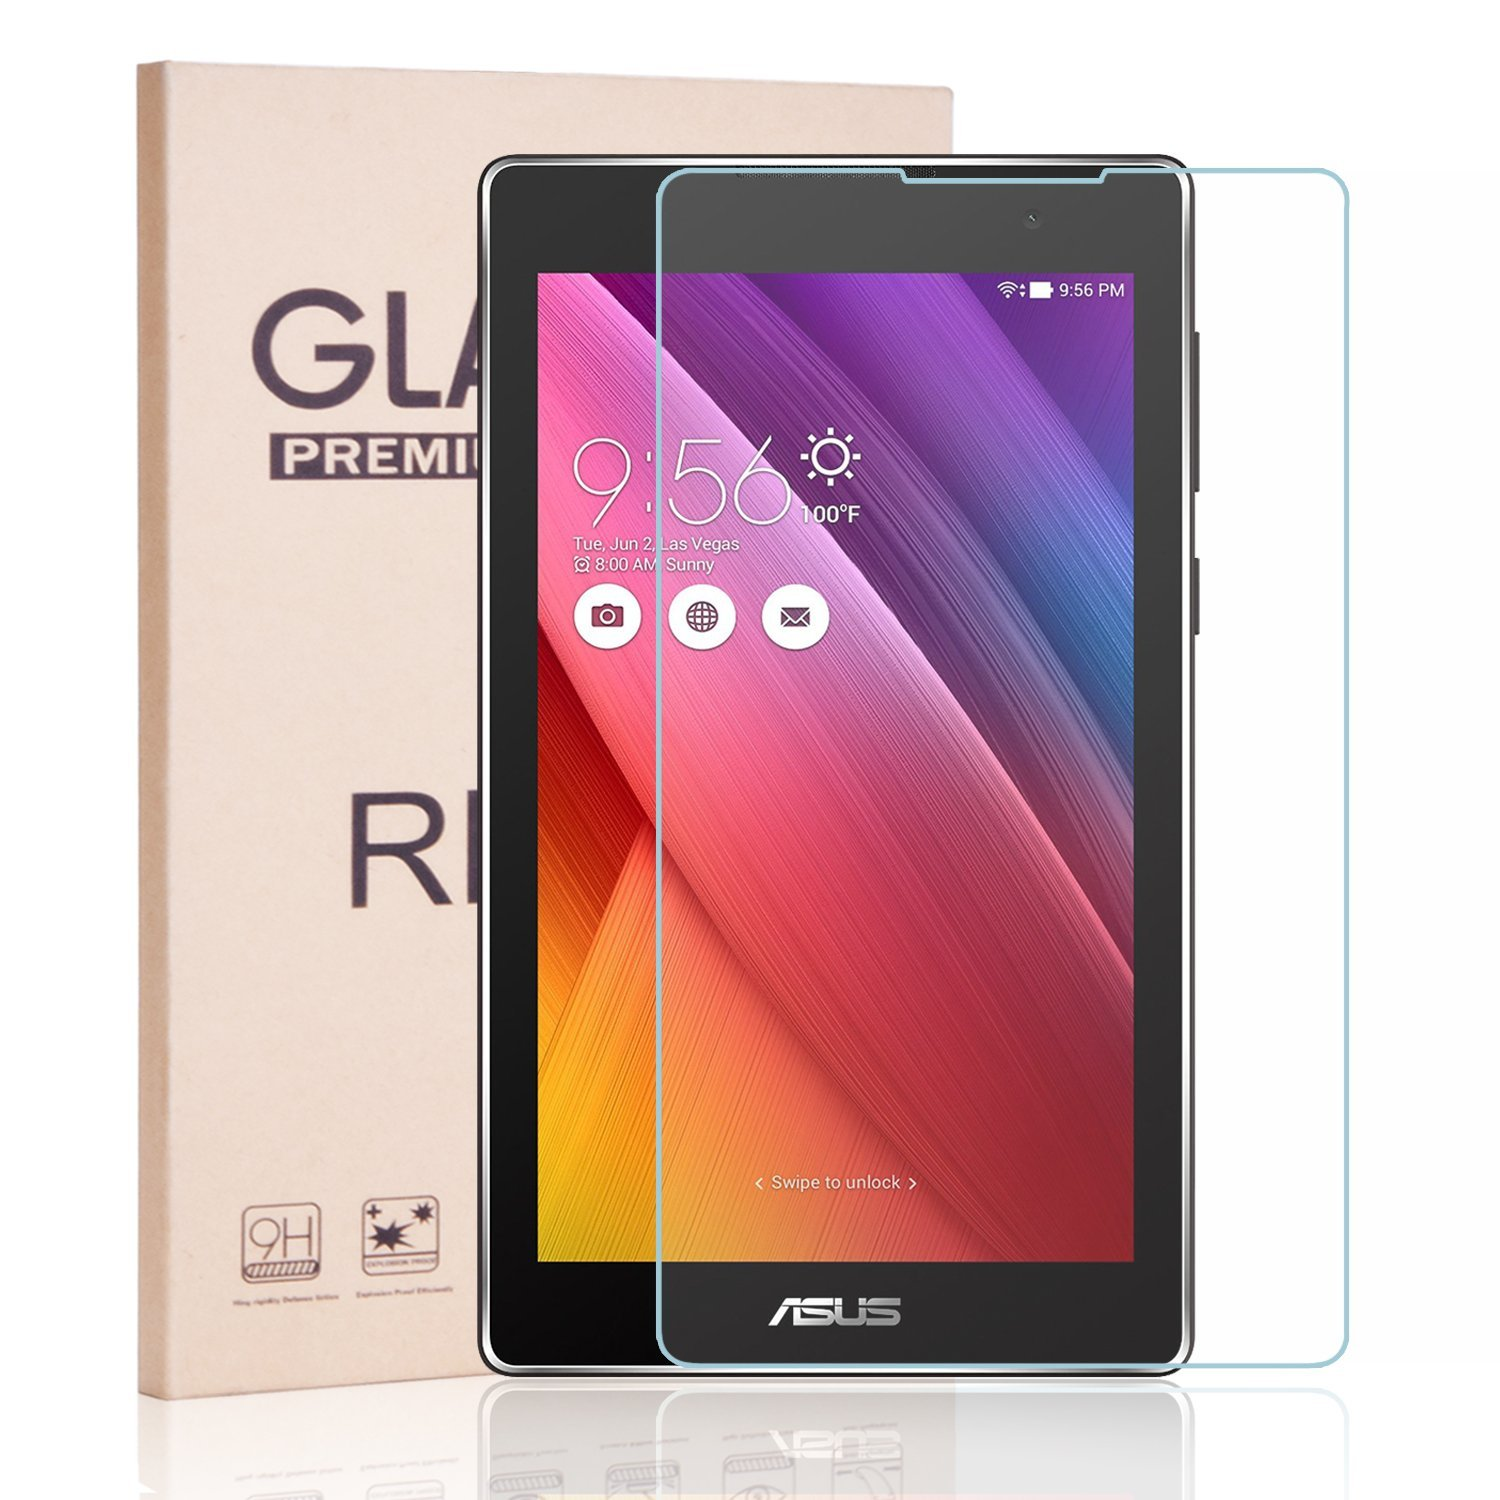 ASUS ZenPad C 7.0 [Tempered Glass] Screen Protector, RBEIK Premium 9H Tempered Glass [Anti-Scratch] Screen Protector for ASUS ZenPad C 7.0 Z170C Z170CG Z170MG 7-Inch Tablet 2015 Released